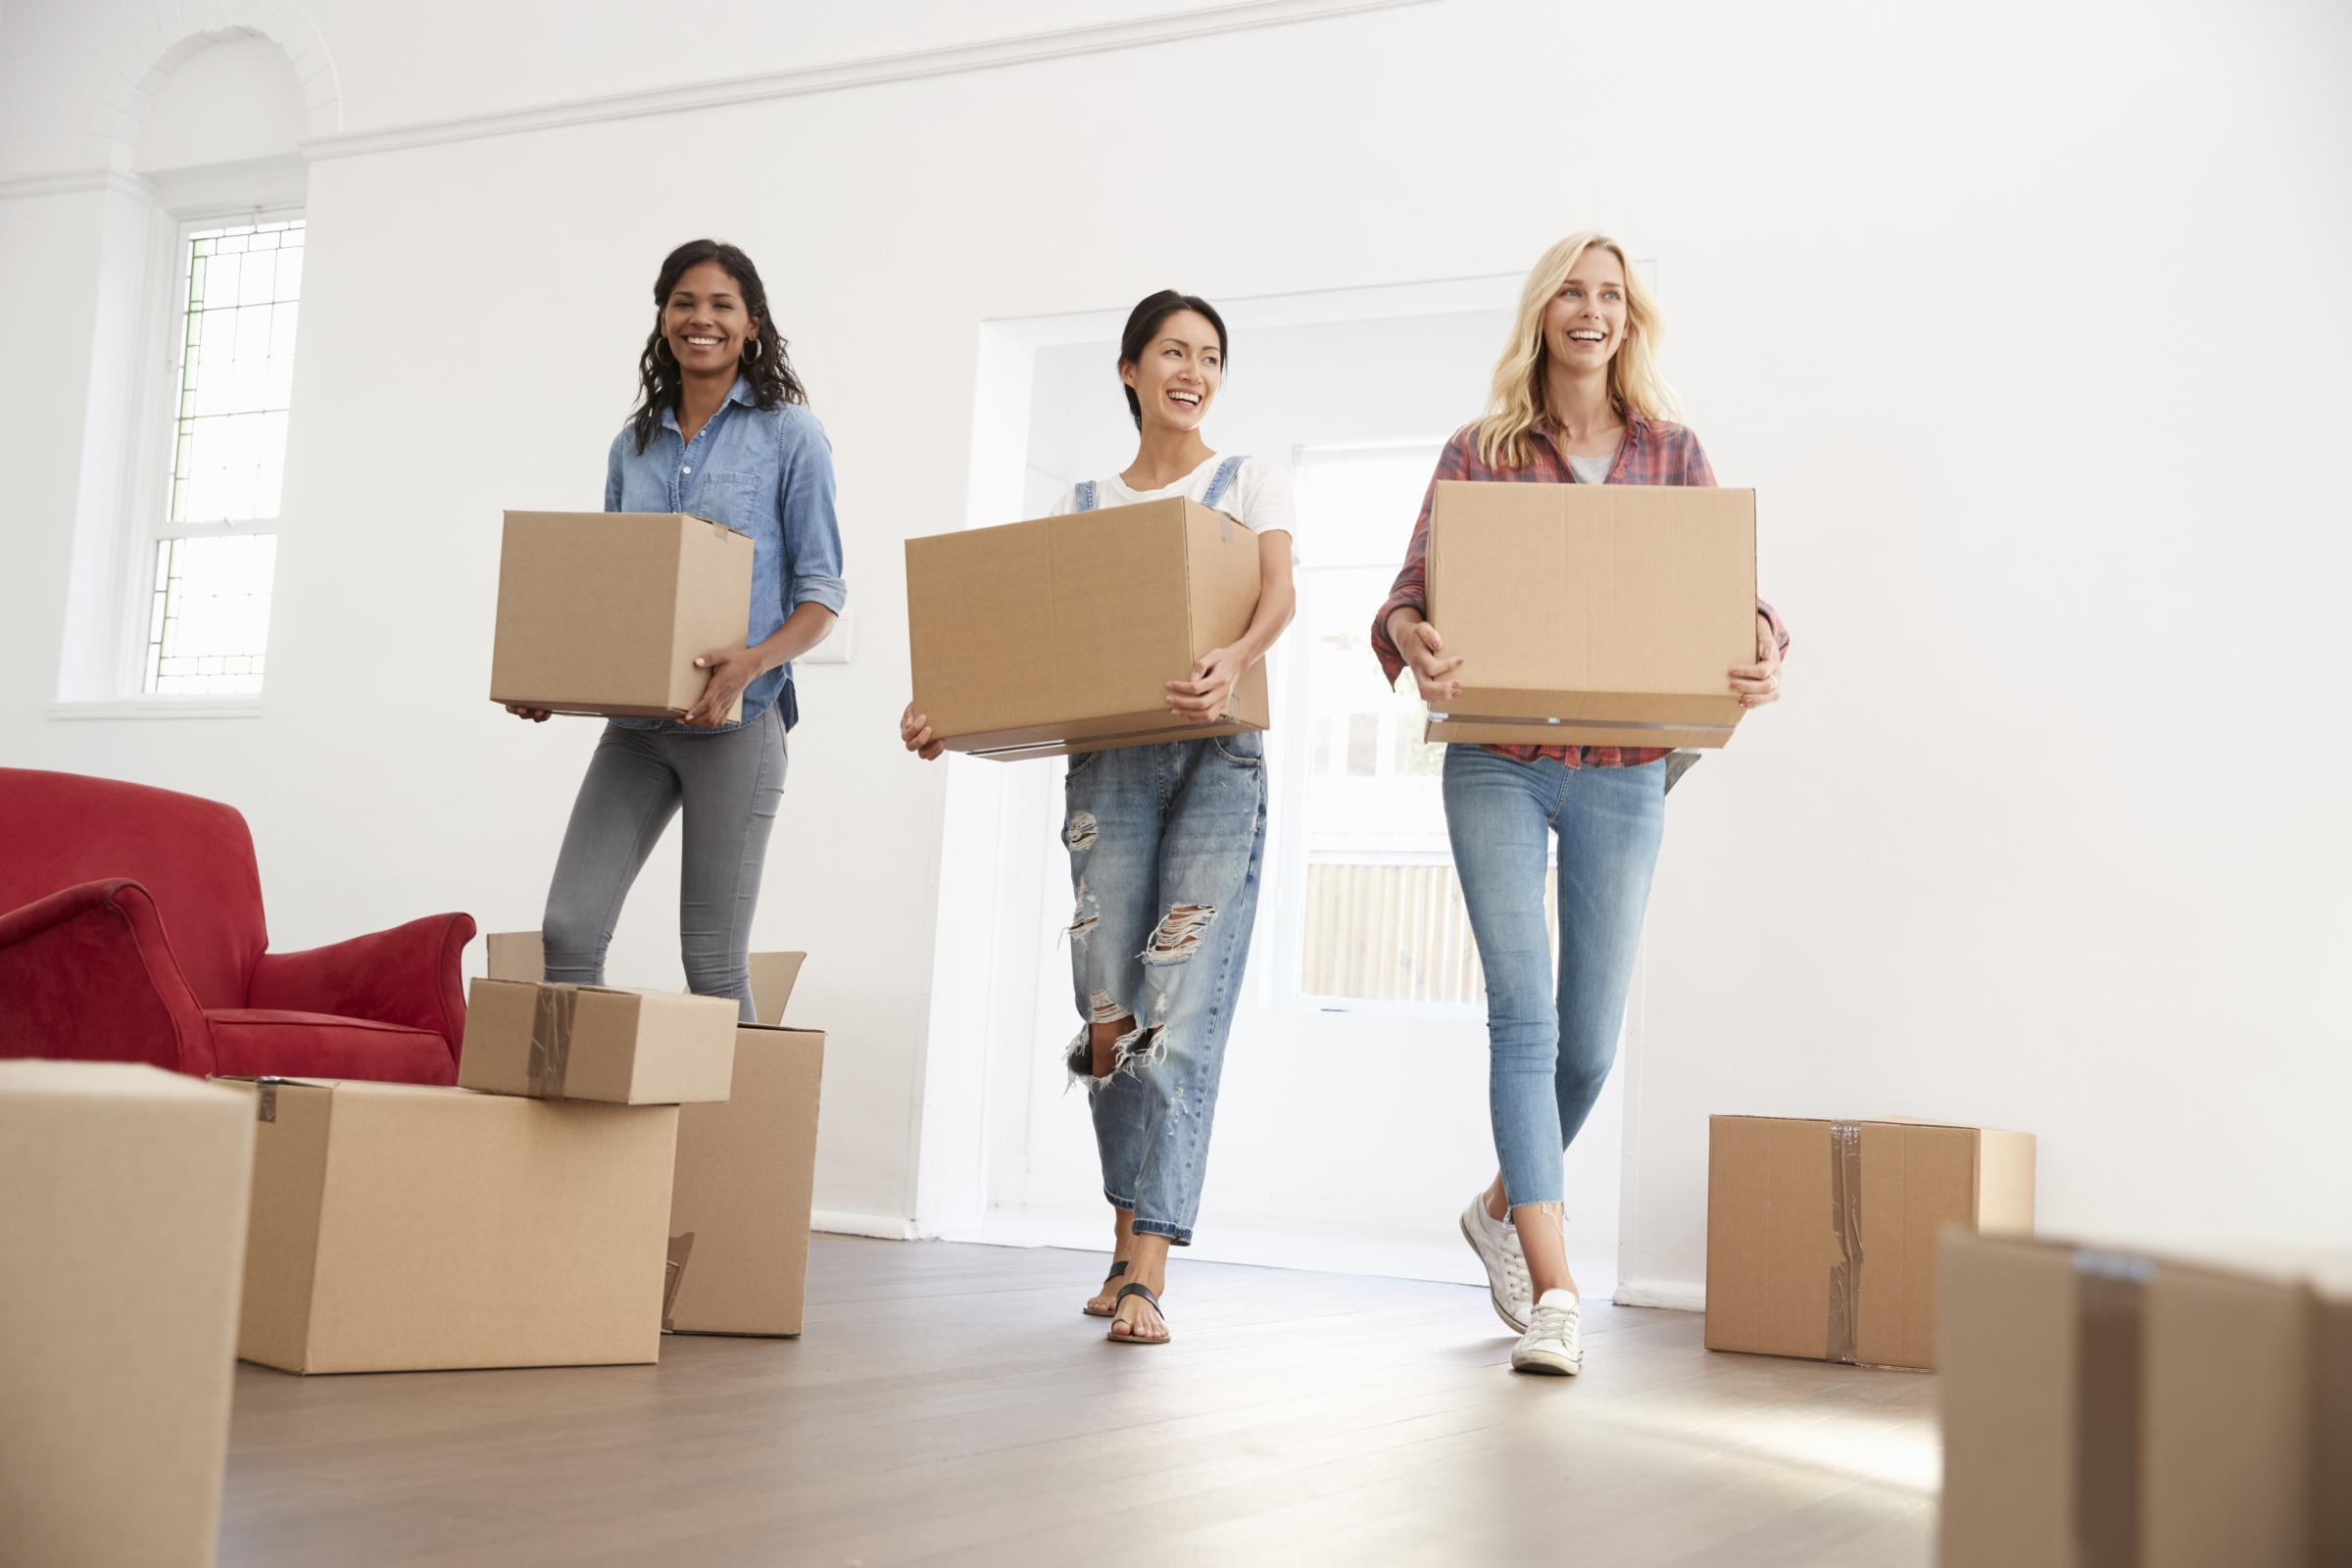 NEW HOME: First time buyer figures on the rise